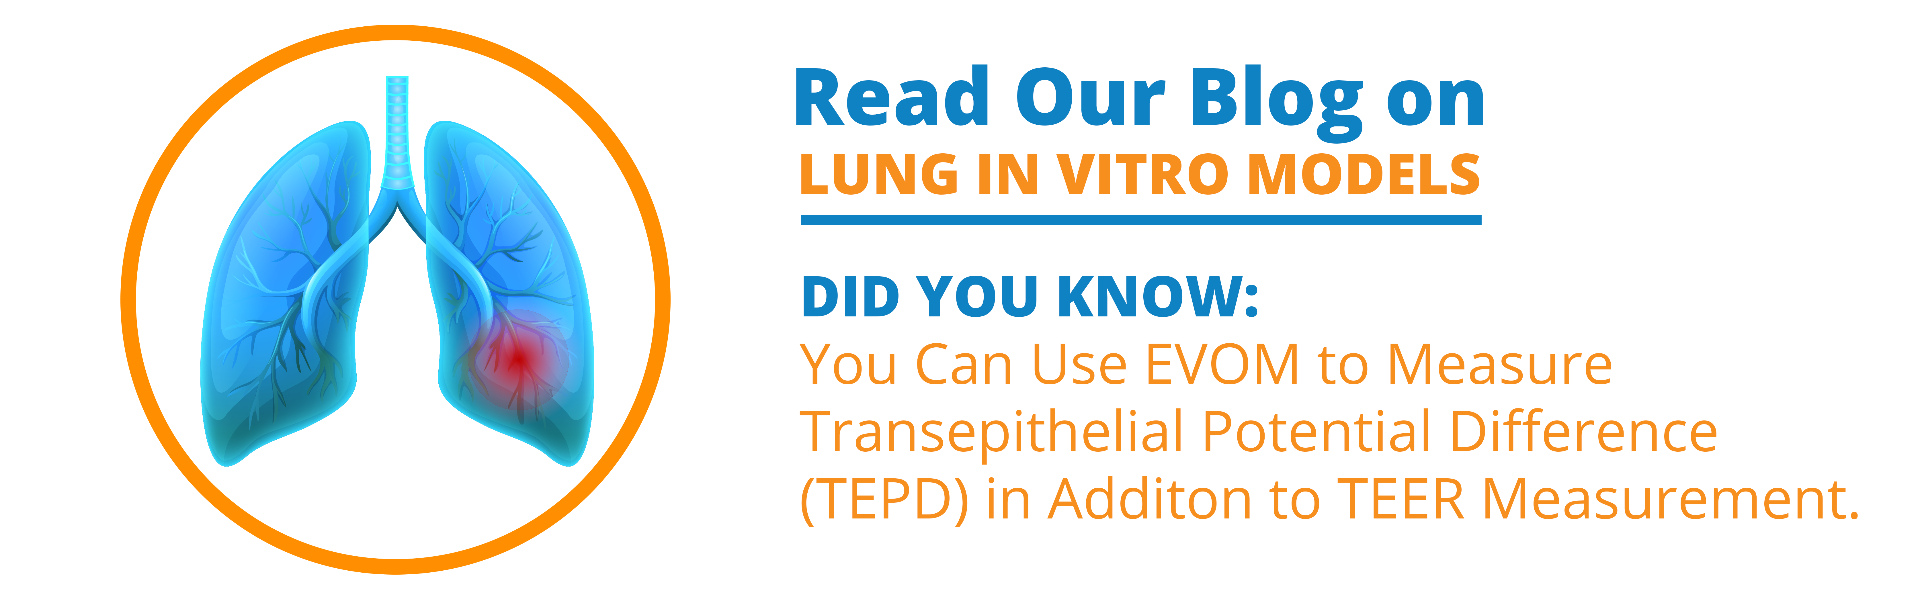 Read our blog on lung in vitro models. Did you know: You can use EVOM to measure transepithelial potential difference (TEPD) in addition to TEER measurement